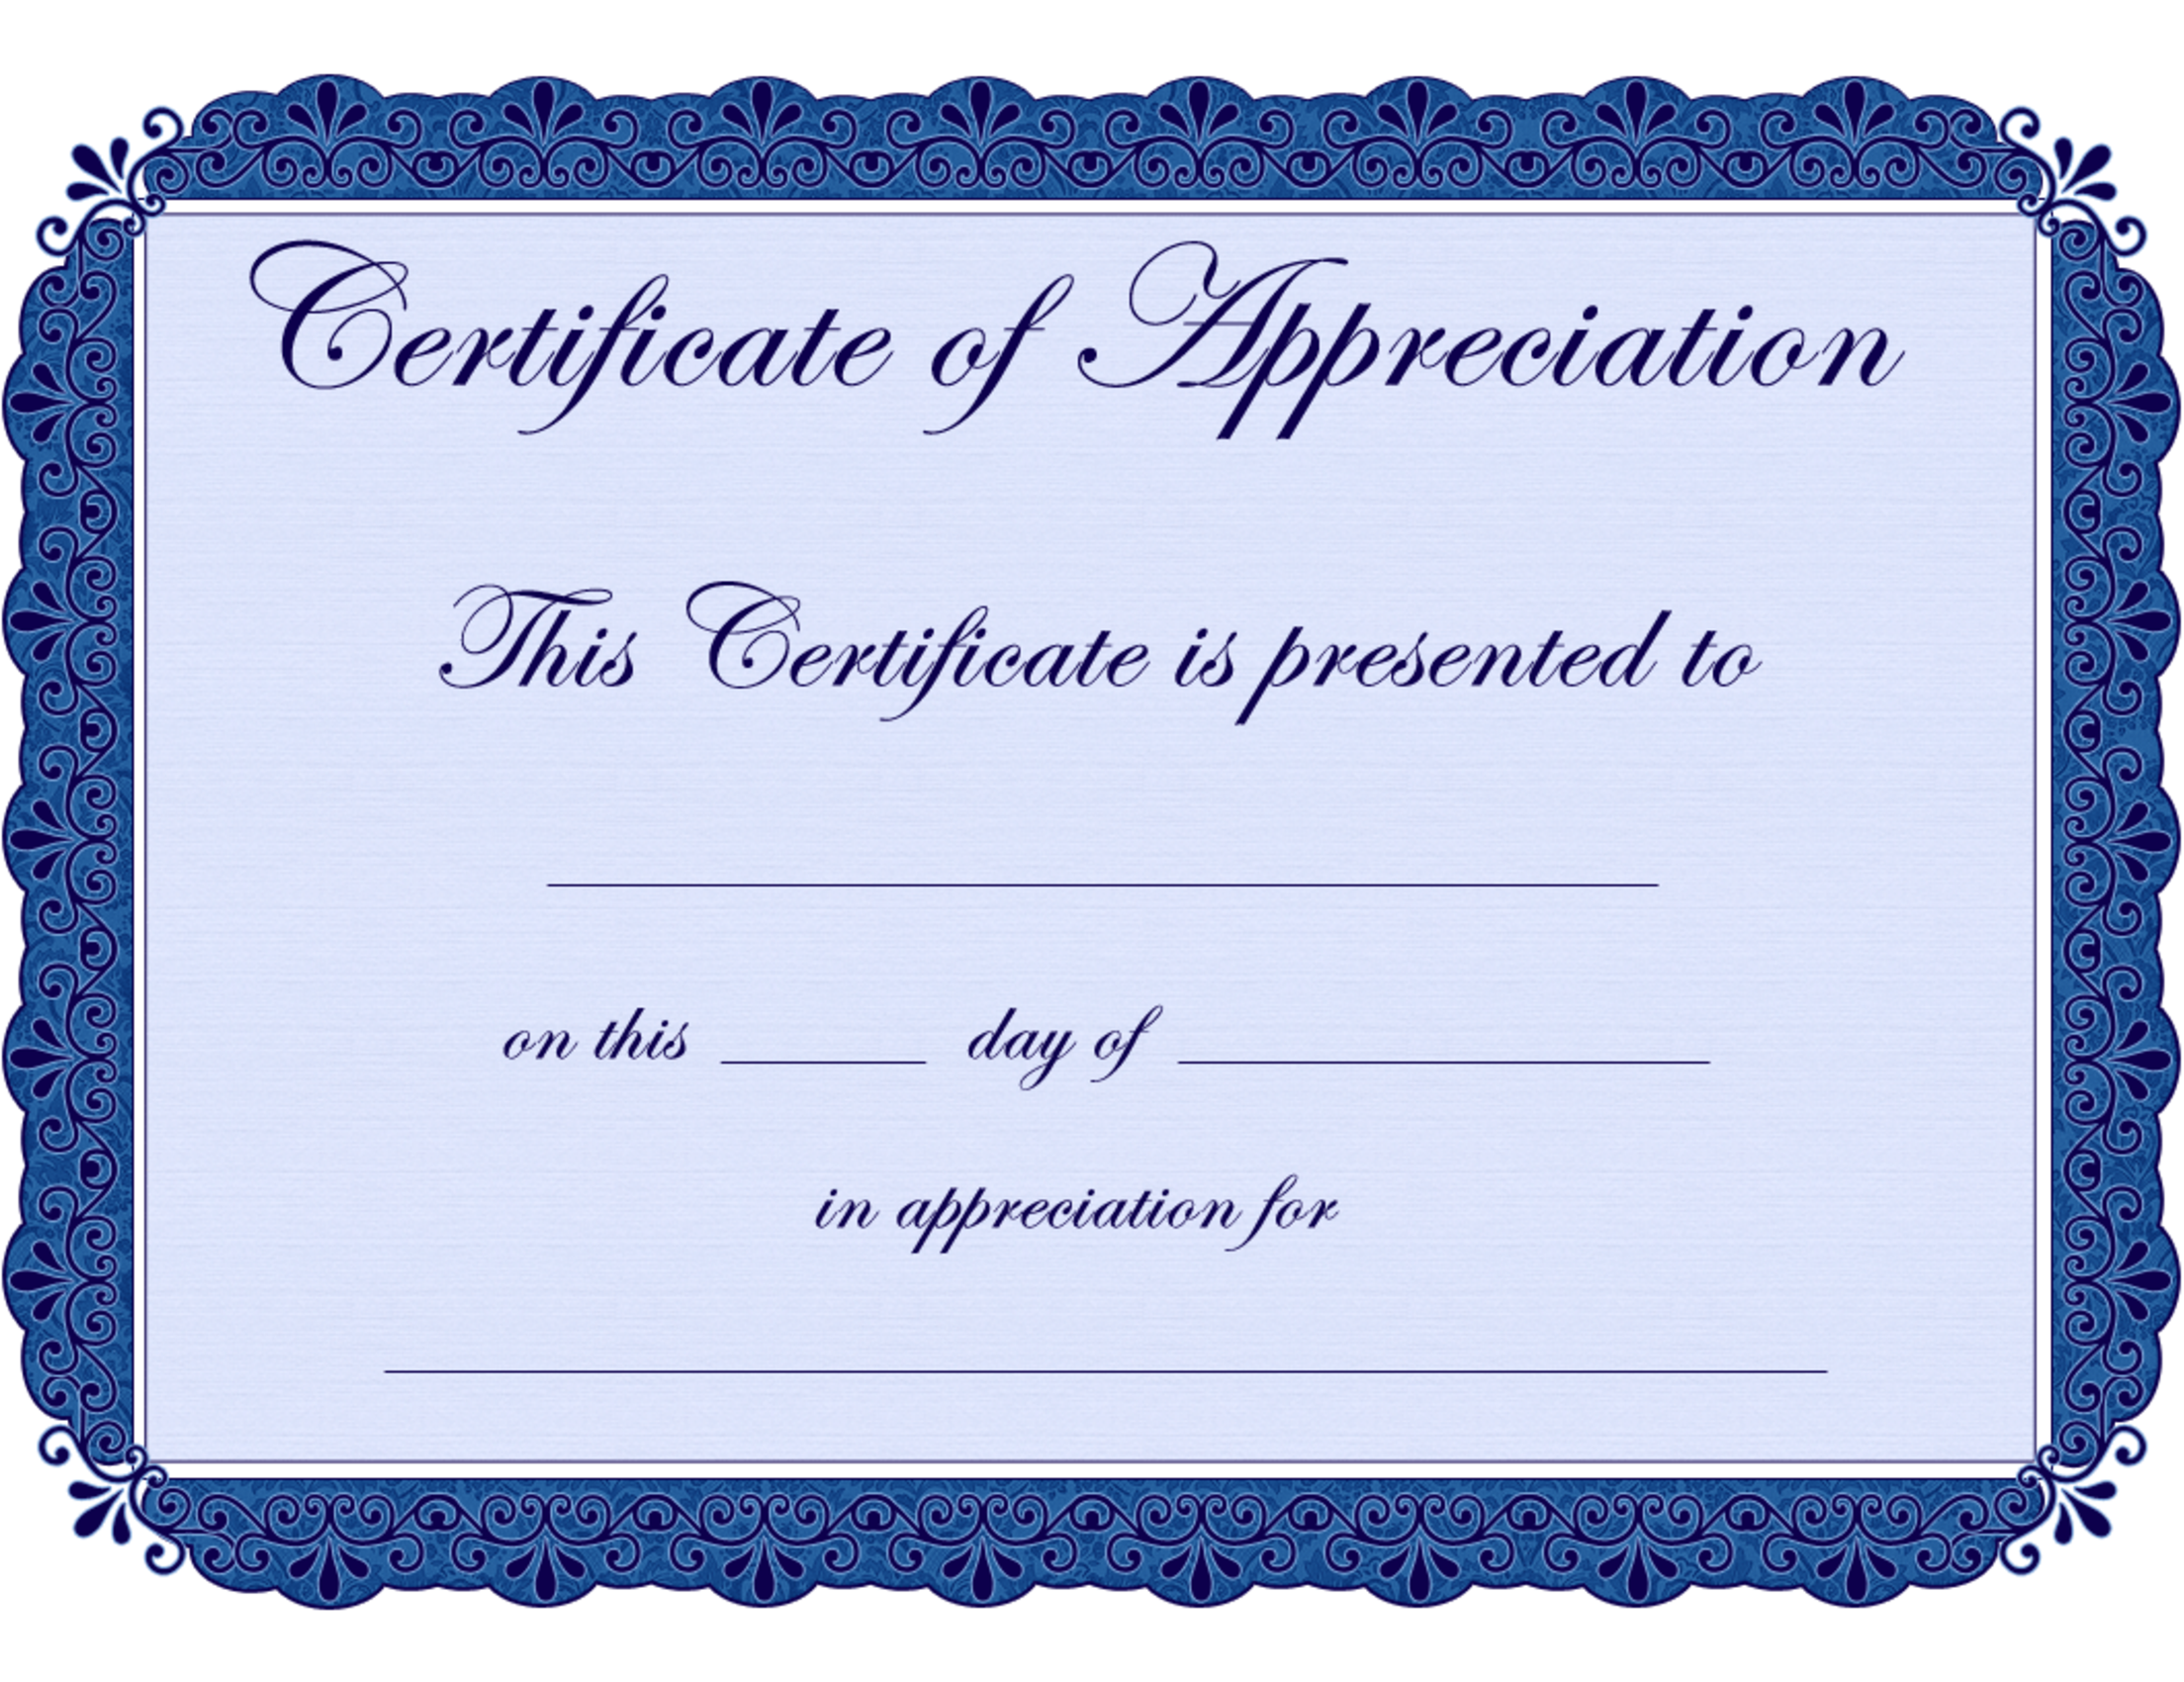 Free printable certificates certificate of appreciation free printable certificates certificate of appreciation certificate yadclub Images